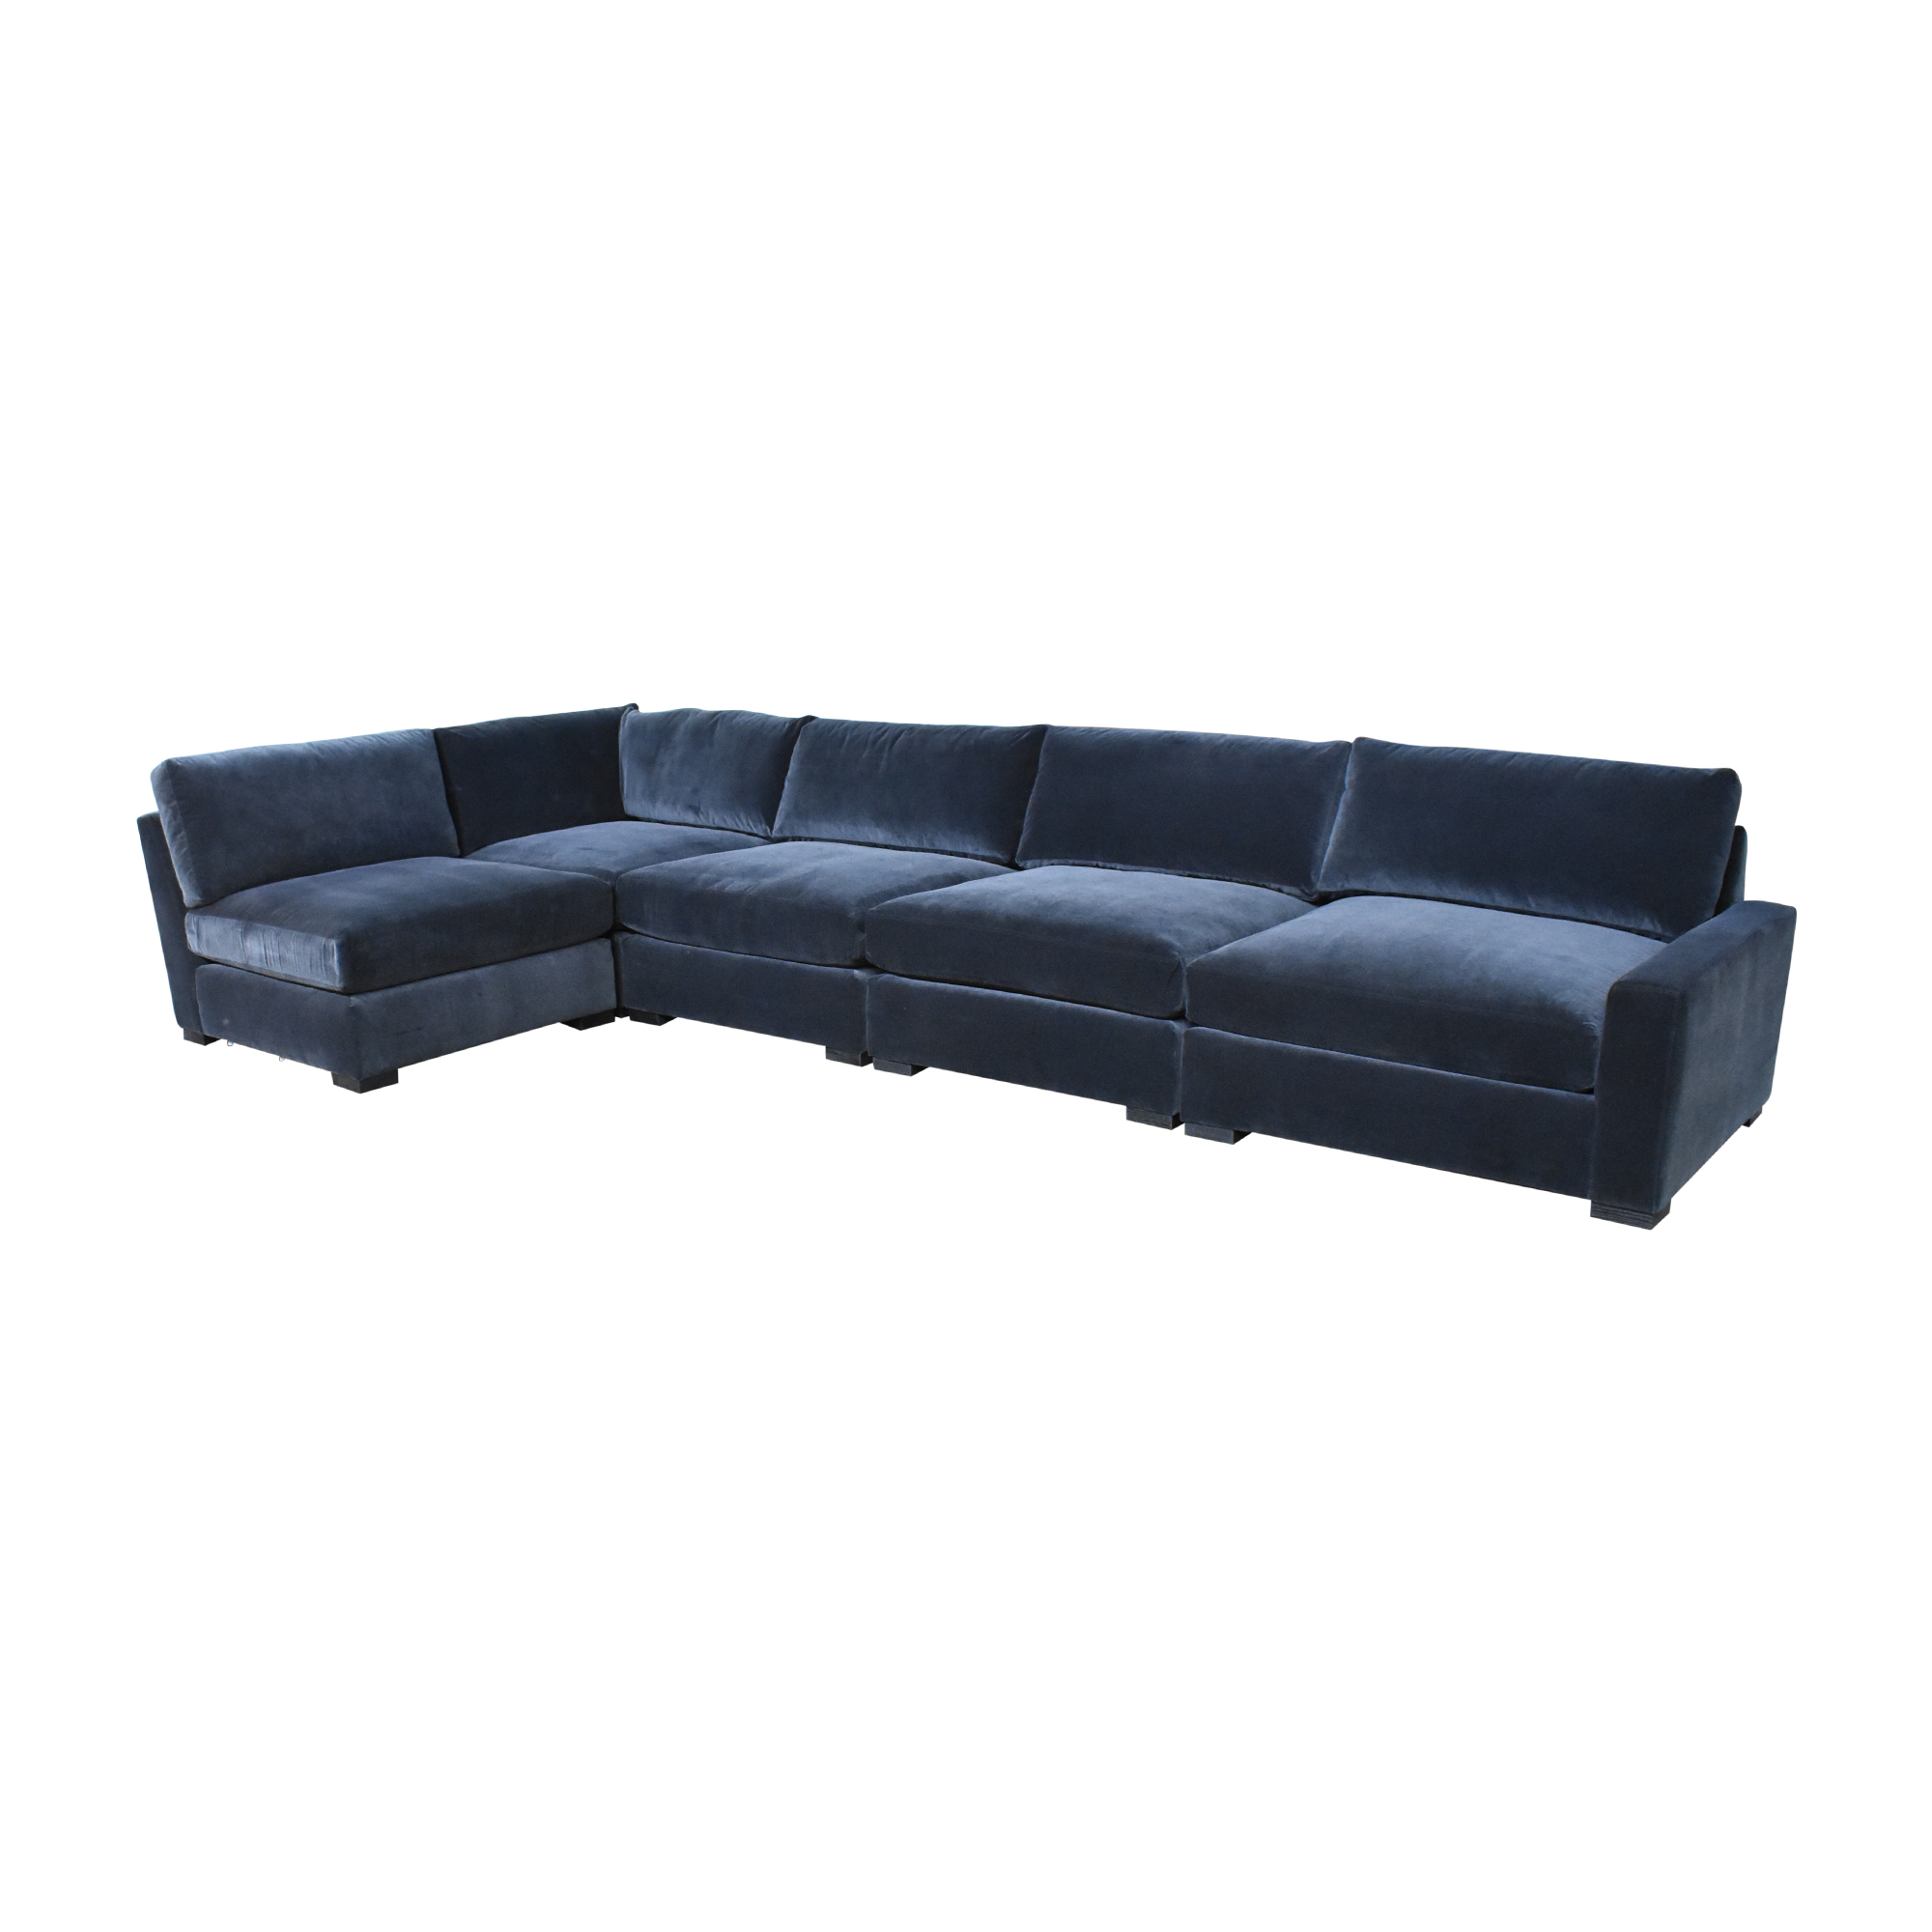 Restoration Hardware Restoration Hardware Maxwell L Shaped Sectional Sofa Sectionals